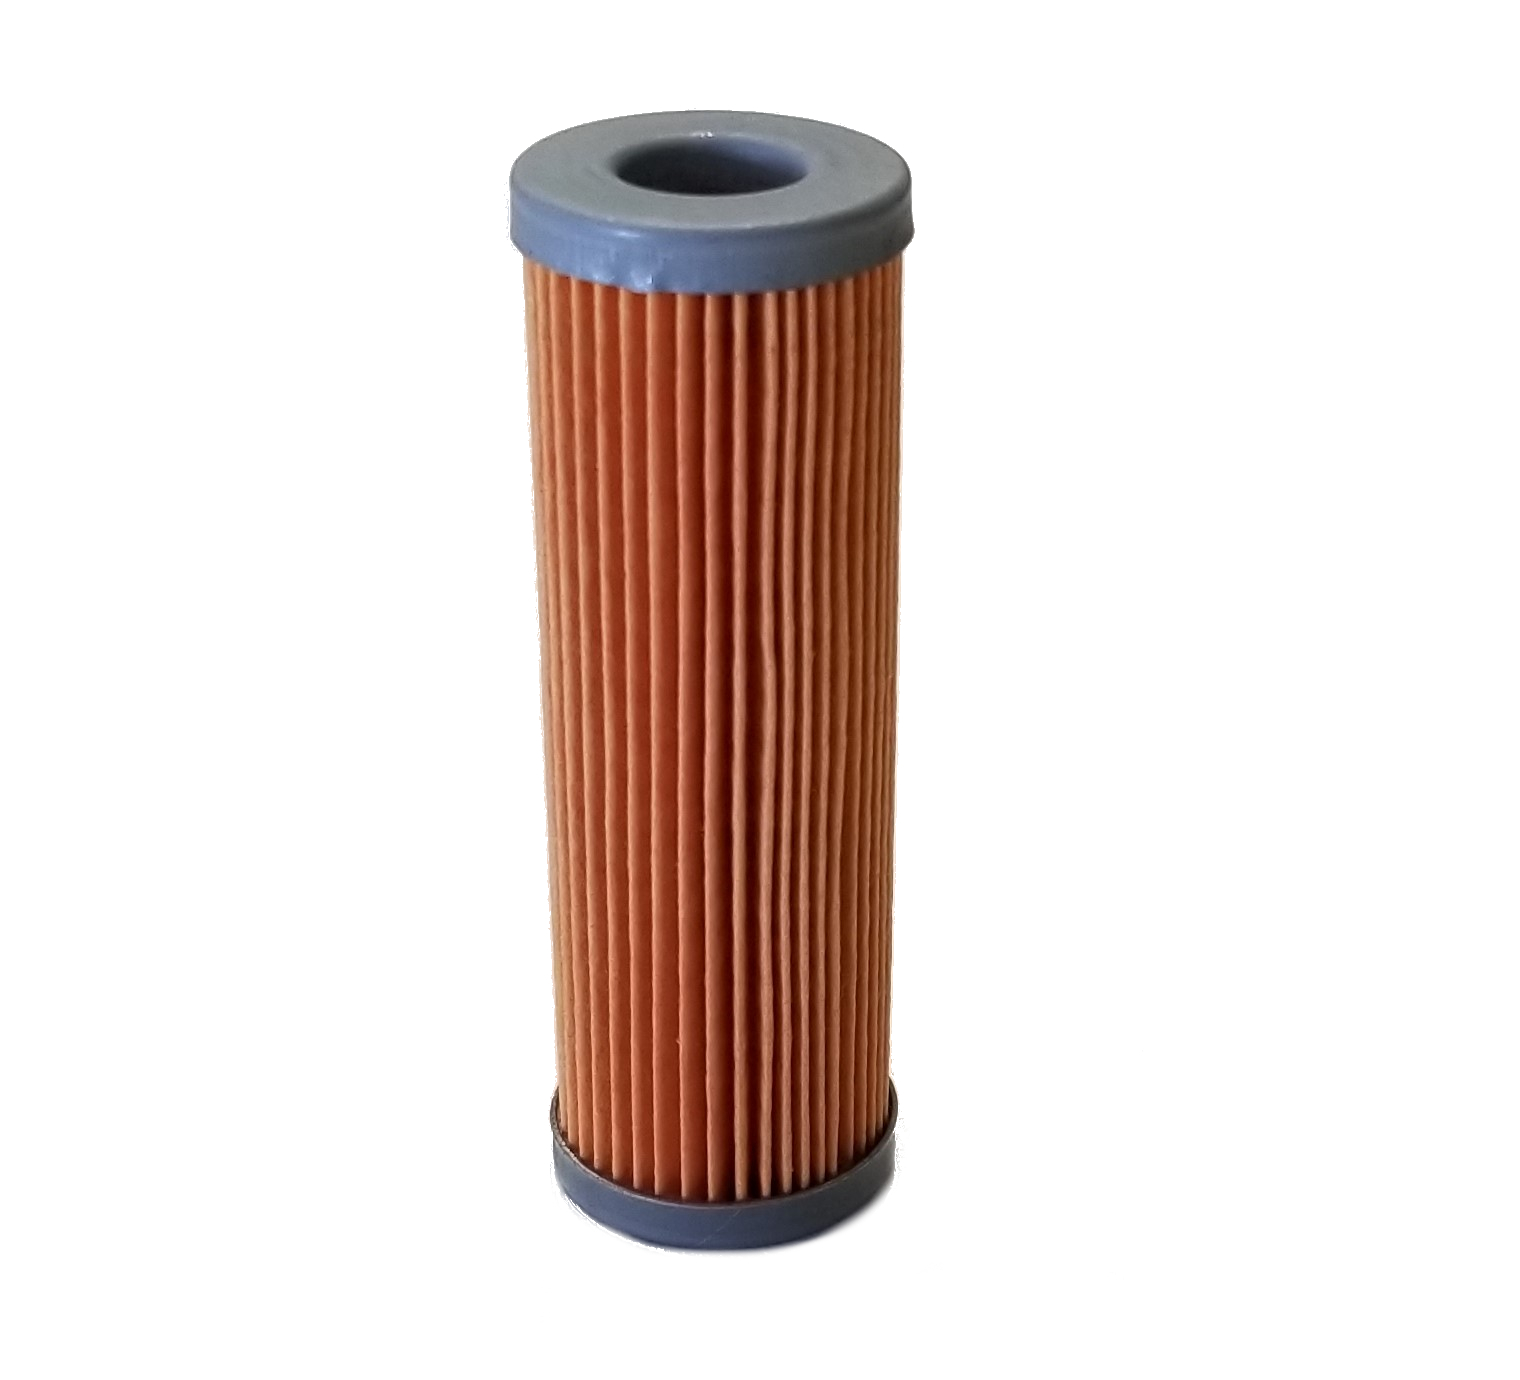 hight resolution of kubota compact tractor front mower in line fuel filter b1ff104 walmart com